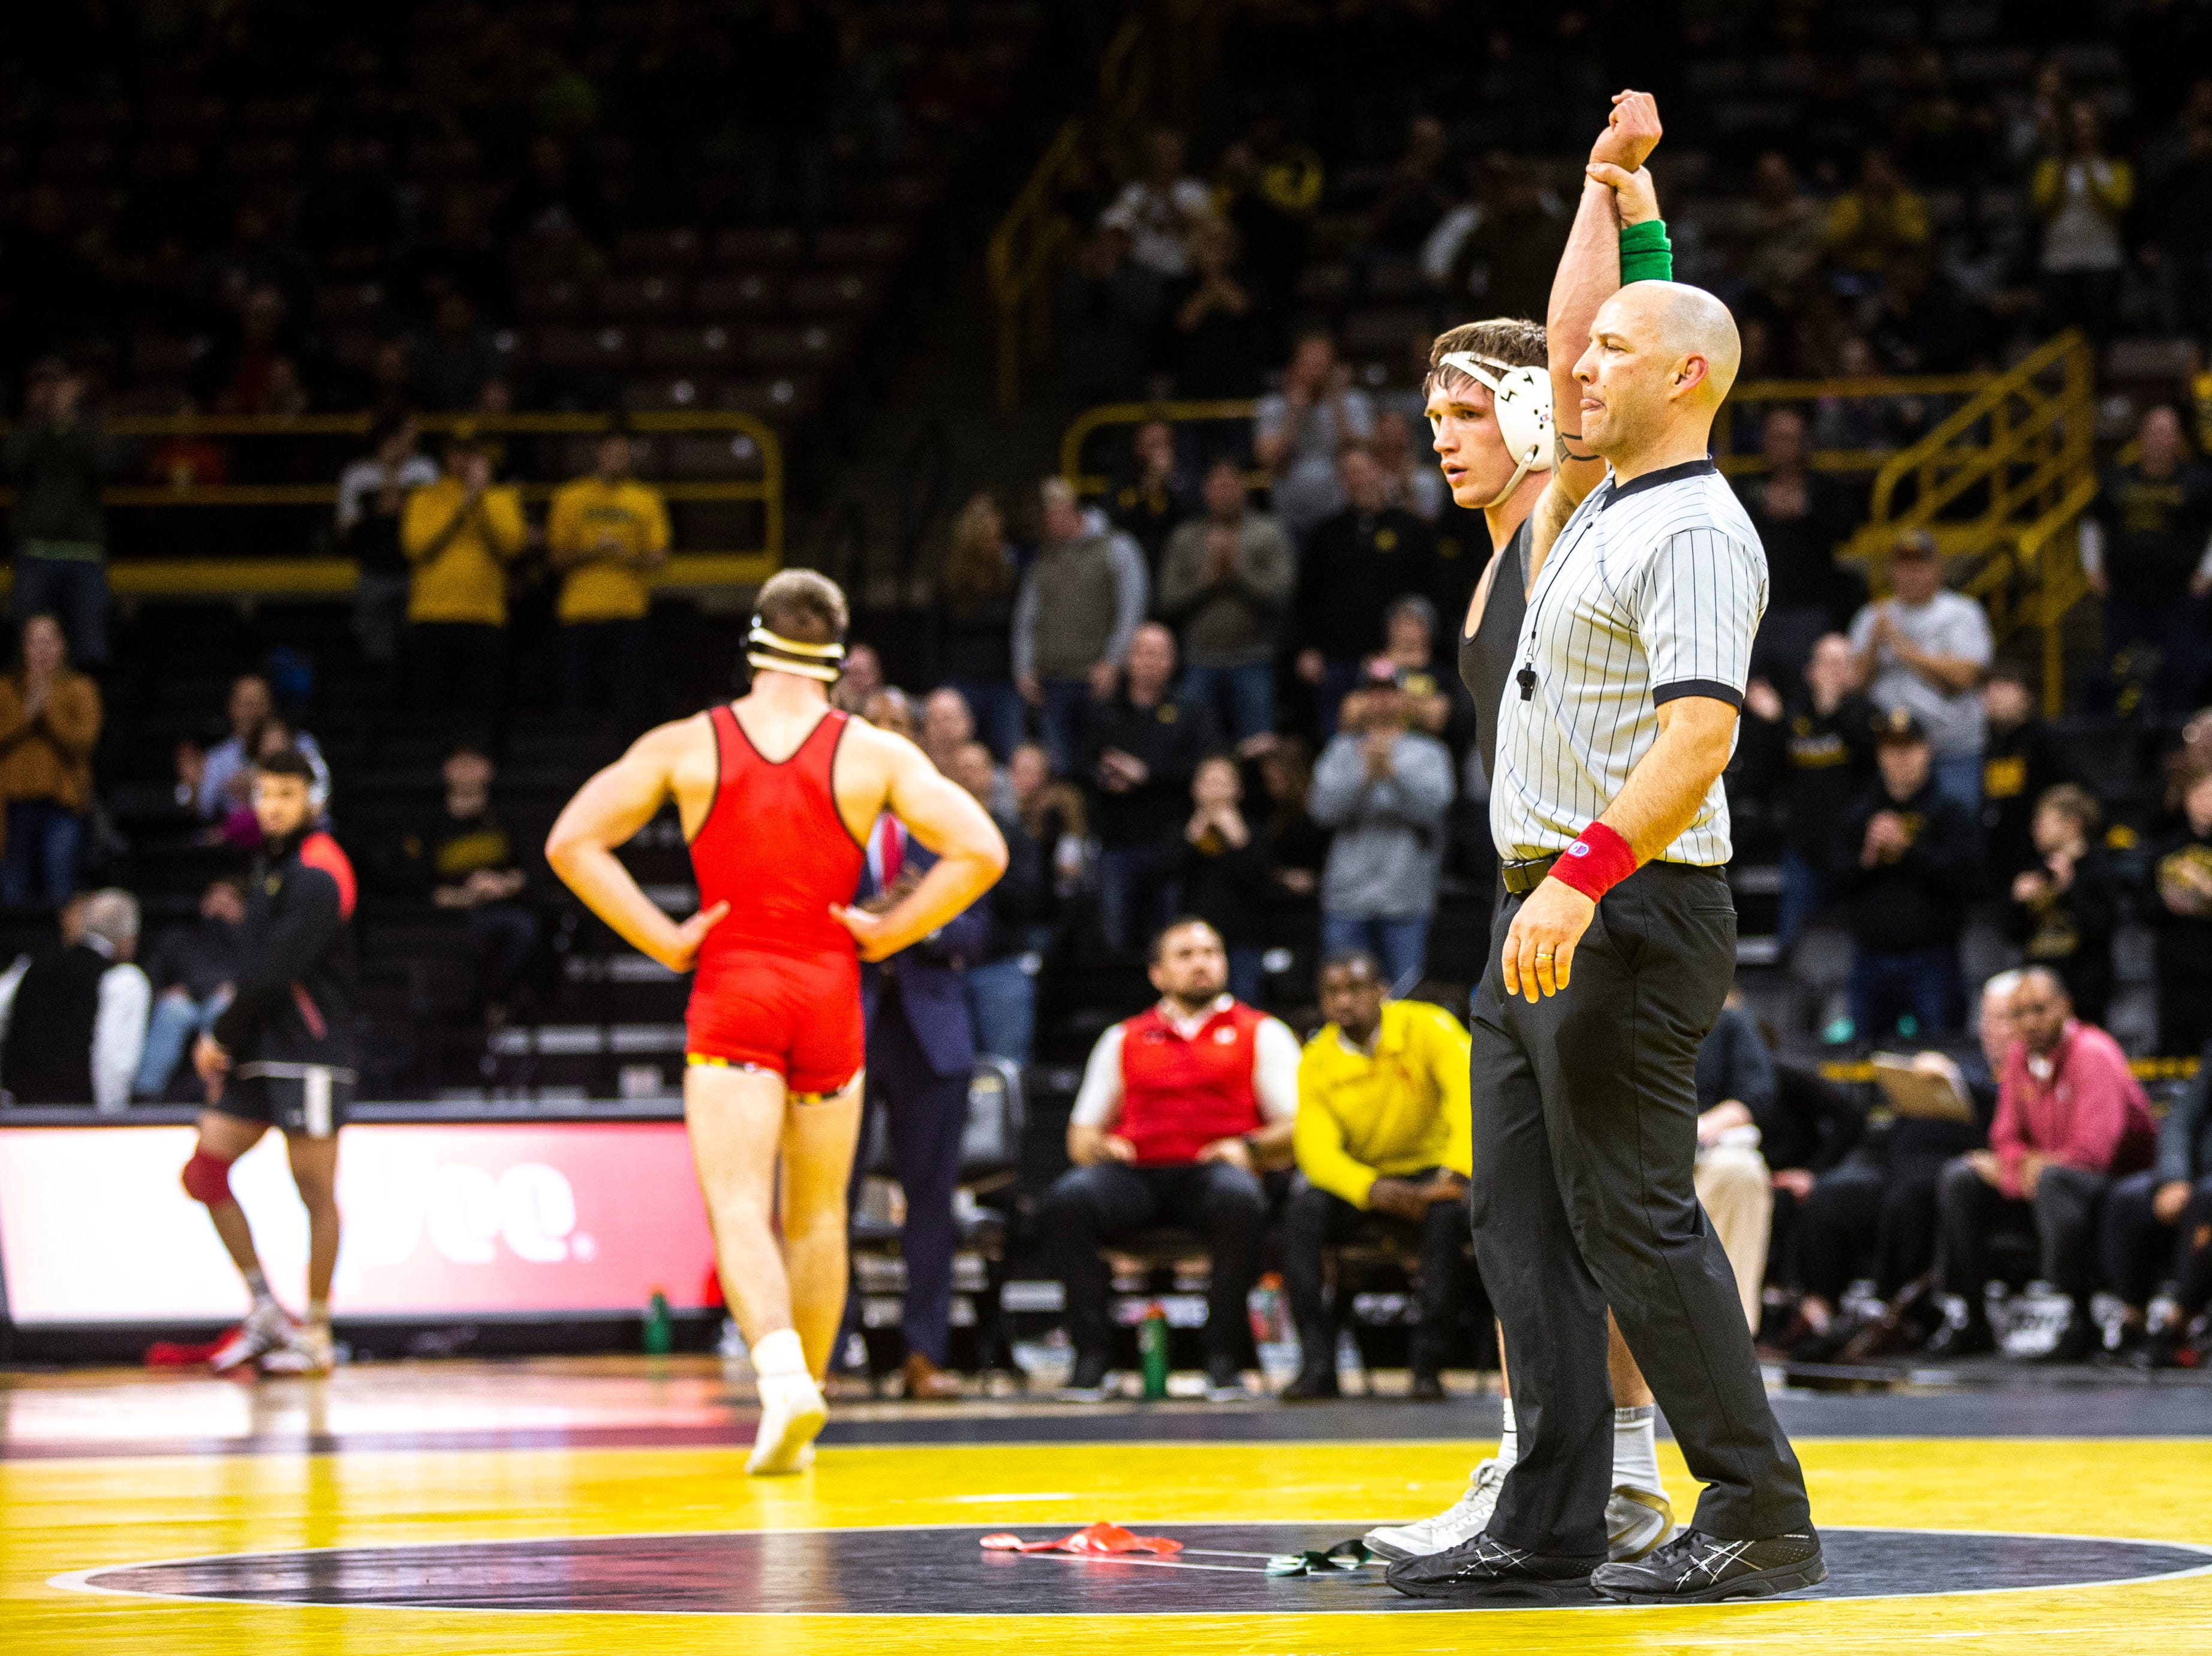 Iowa's Cash Wilcke has his hand raised after scoring a major decision over Maryland's Kyle Jasenski at 184 during a NCAA Big Ten Conference wrestling dual on Friday, Feb. 8, 2019 at Carver-Hawkeye Arena in Iowa City, Iowa.